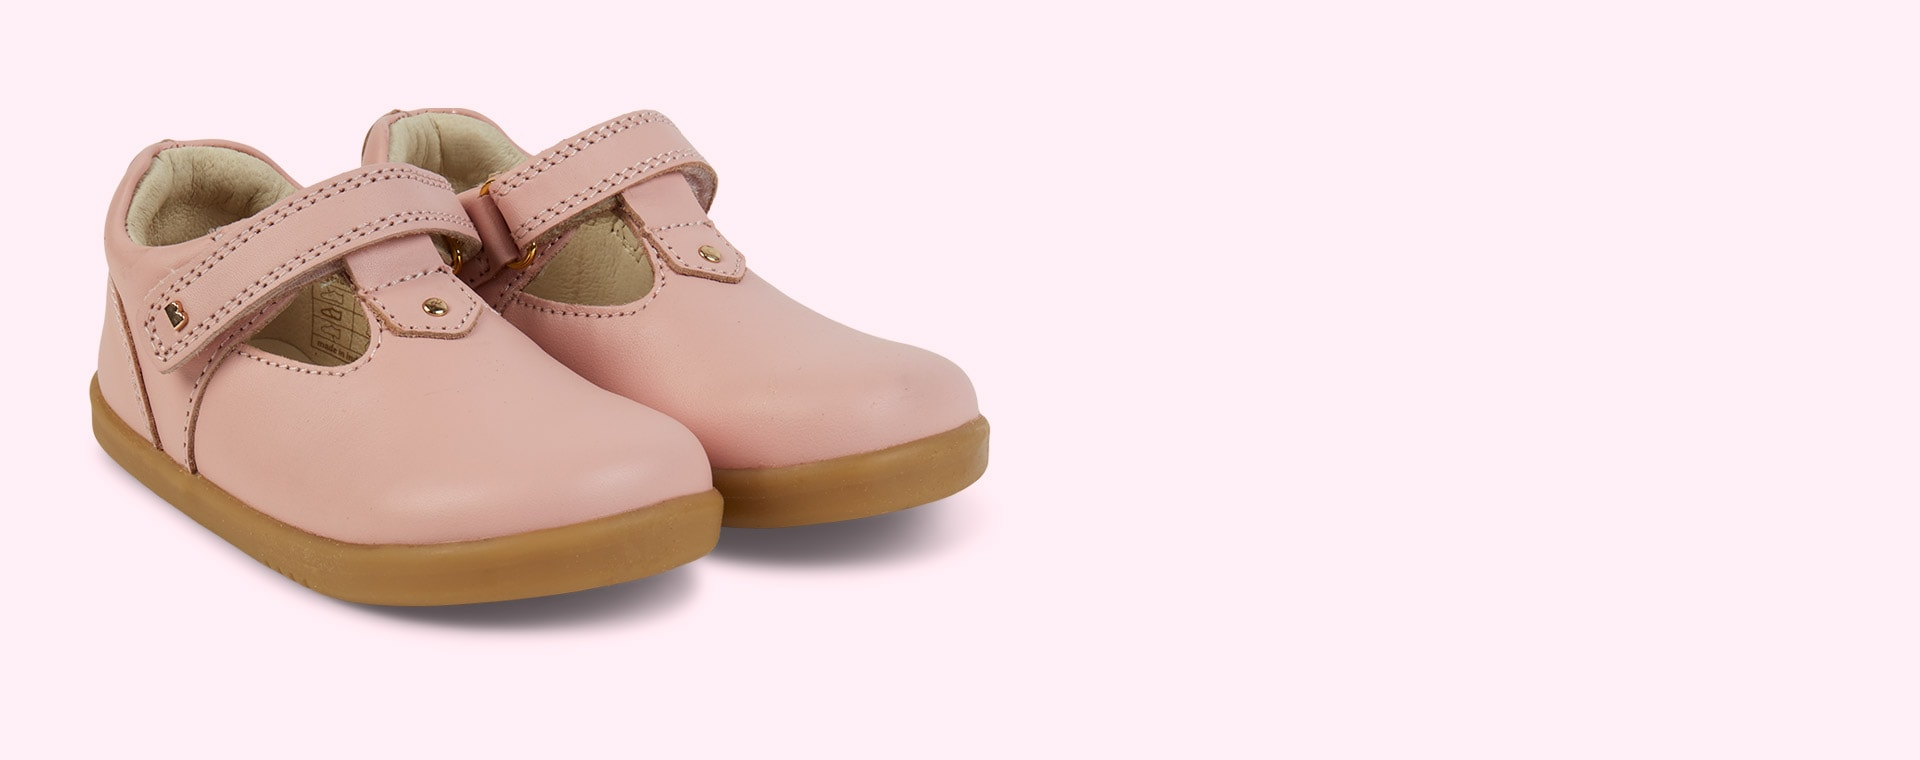 Seashell Bobux I-Walk Louise T-bar Shoe